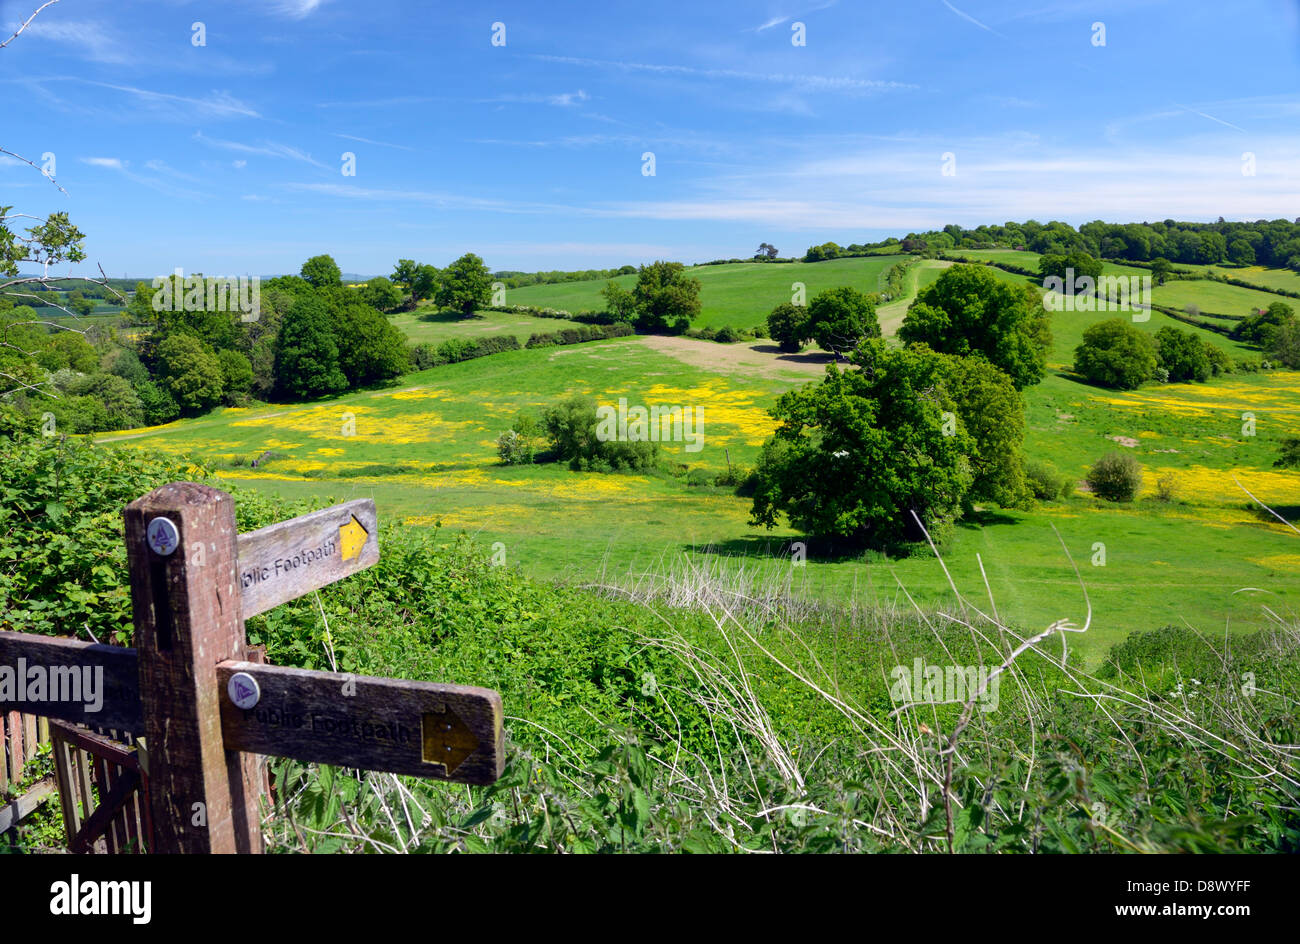 Countryside to the east of the market town of Petworth, West Sussex, UK - Stock Image